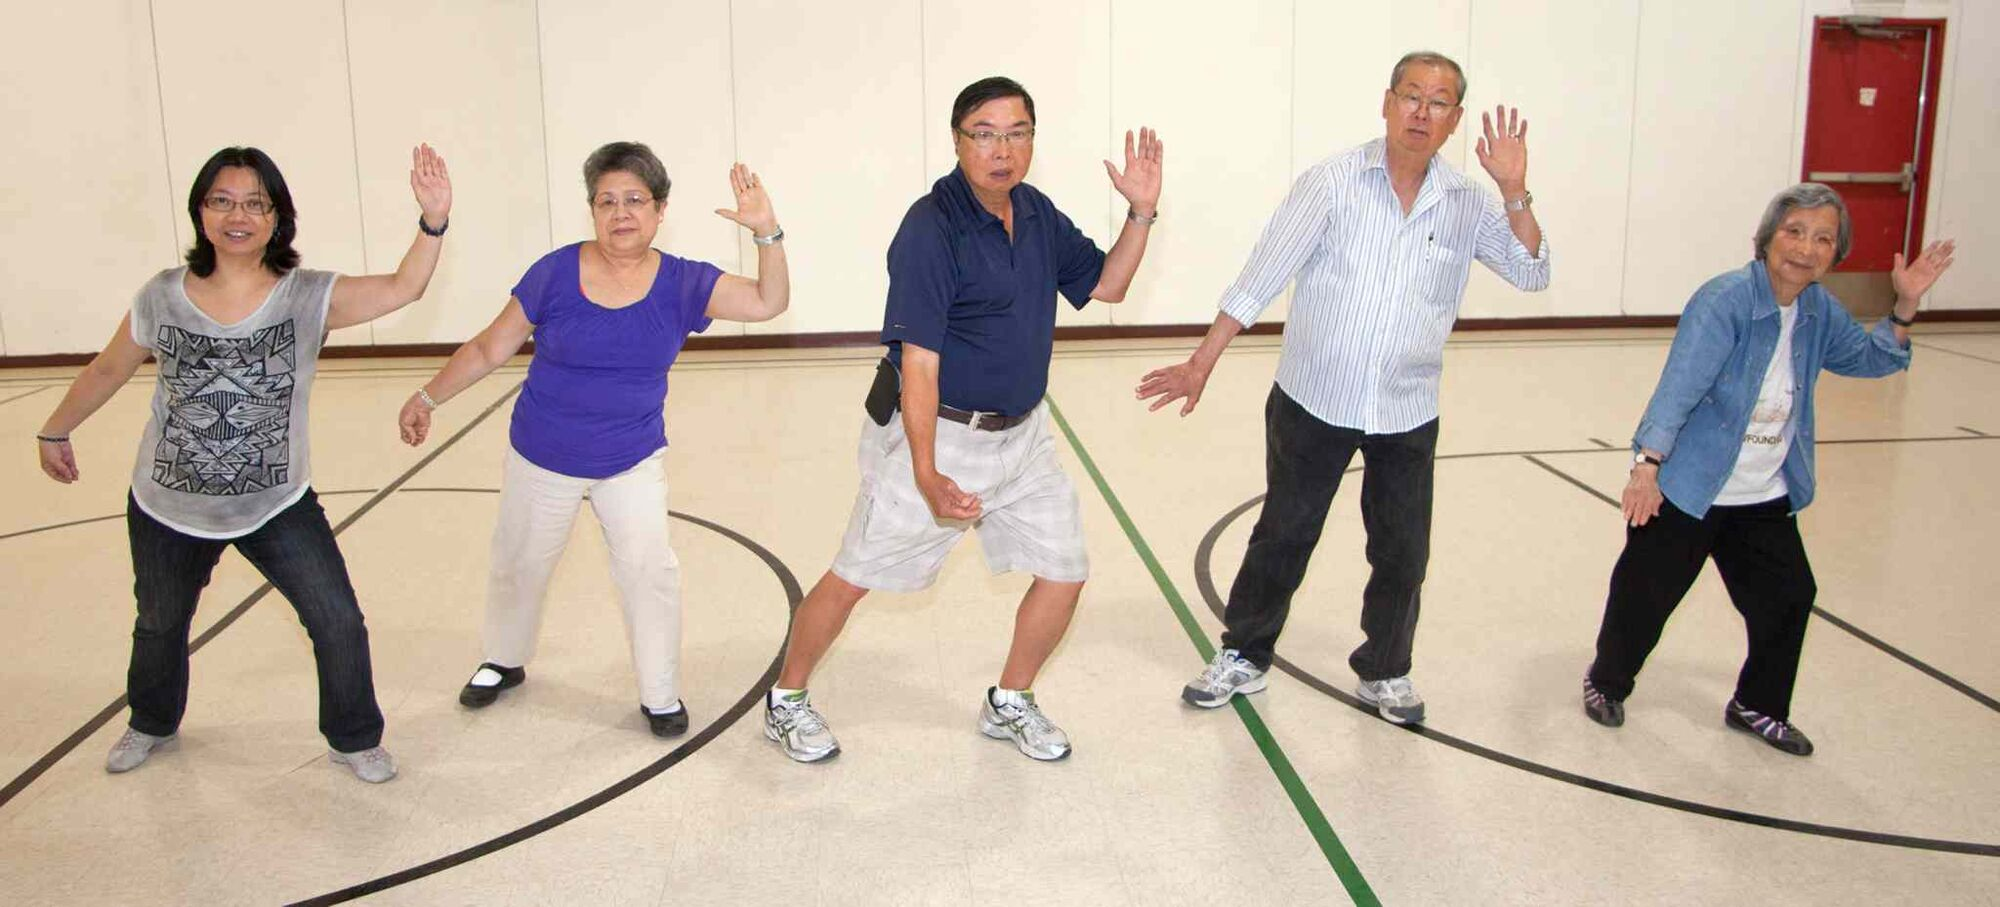 The Valour Road Community Centre's Clifton site (1315 Strathcona St.) is hosting a tai chi class every Wednesday at 10 a.m. They invite you to come and learn the 108 moves of tai chi. Anita Suen (from left), Lily Beltran, instructor Garry Eng, Cai Ngo and Fong Sue were working out on July 29, 2015. (JOHN JOHNSTON FOR THE WINNIPEG FREE PRESS)  Tai Chi Classes � Valour Road Community Centre Clifton Site  Valour Road Community Centre (Clifton Site) is running an ongoing  Tai Chi Class that takes place every Wednesday at 10 AM. They invite you to come and learn the 108 moves of Tai Chi. (L-R) Anita Suen, Lily Beltran, Garry Eng (Instructor), Cai Ngo, Fong Suen